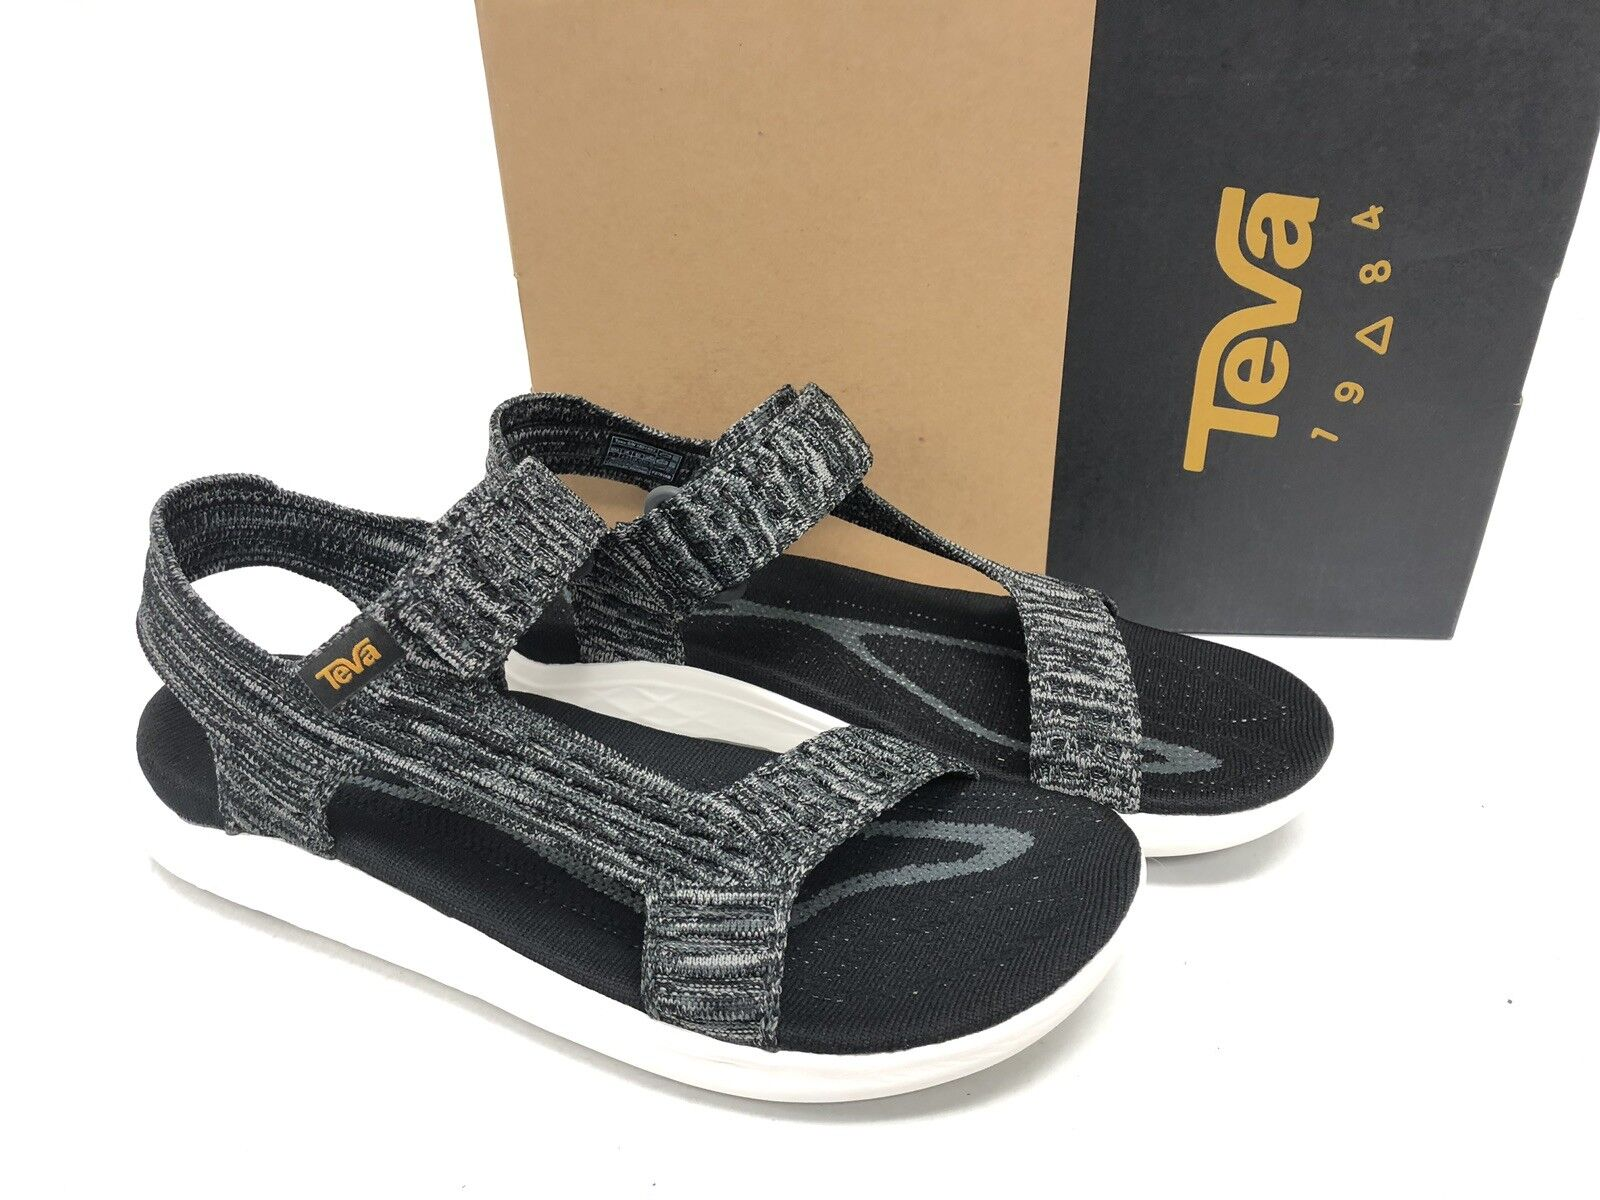 TEVA BLACK TERRA FLOAT 2 KNIT UNIVERSAL STRAPPY SANDALS Men's Shoes 1091592